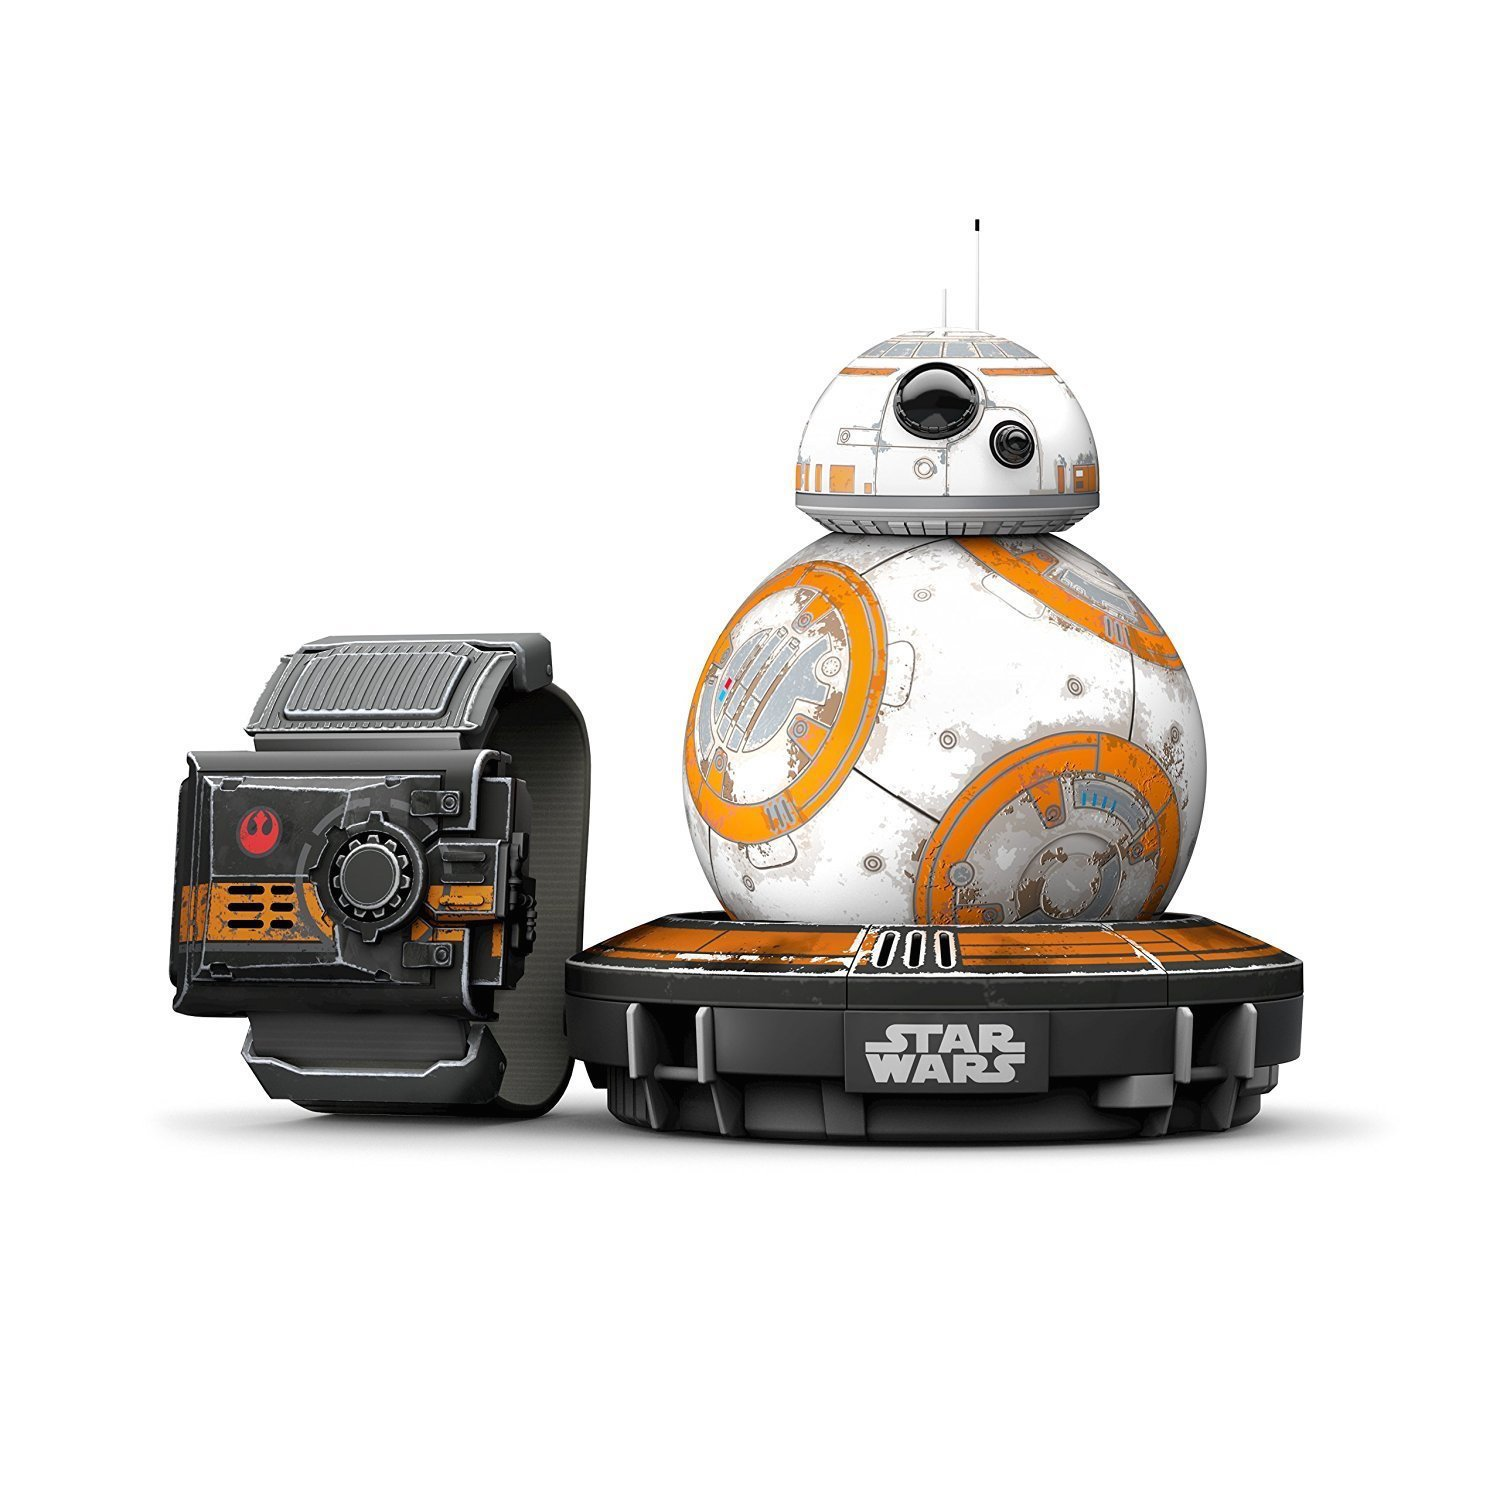 Sphero Star Wars BB-8 App Controlled Robot with Star Wars Force Band